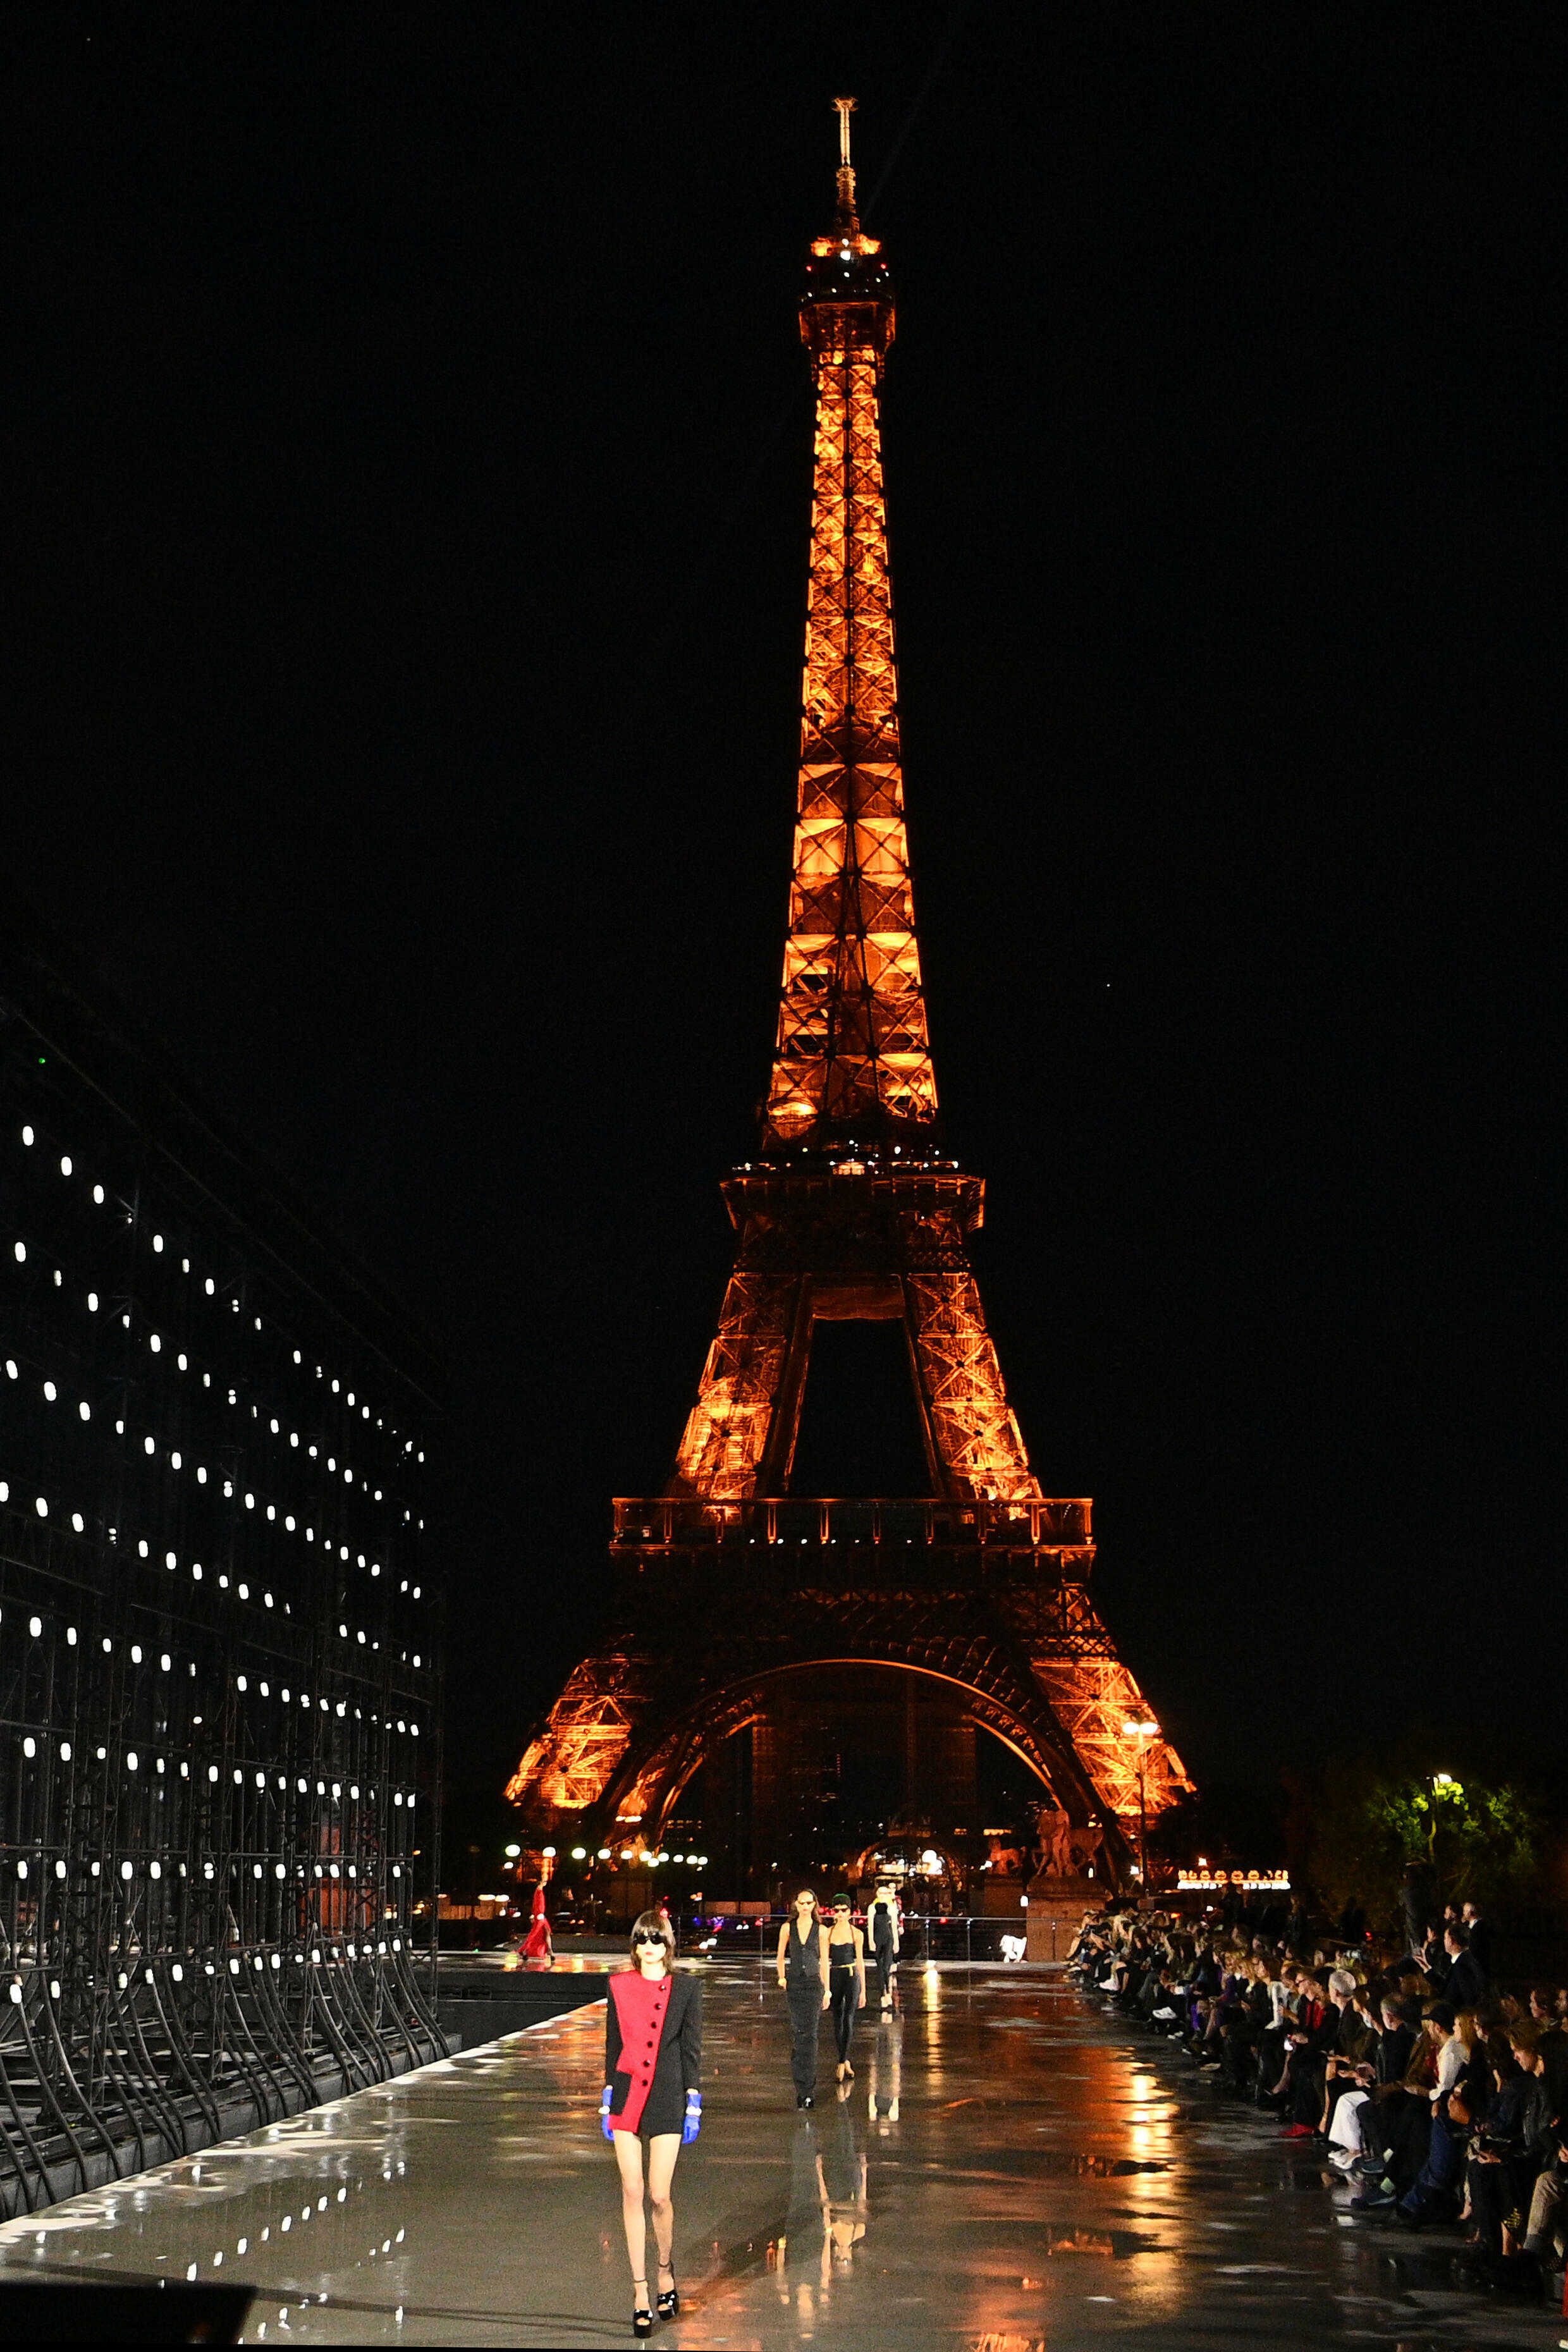 Yves Saint Laurent opted for a traditional approach, returning to his preferred location facing the Eiffel Tower